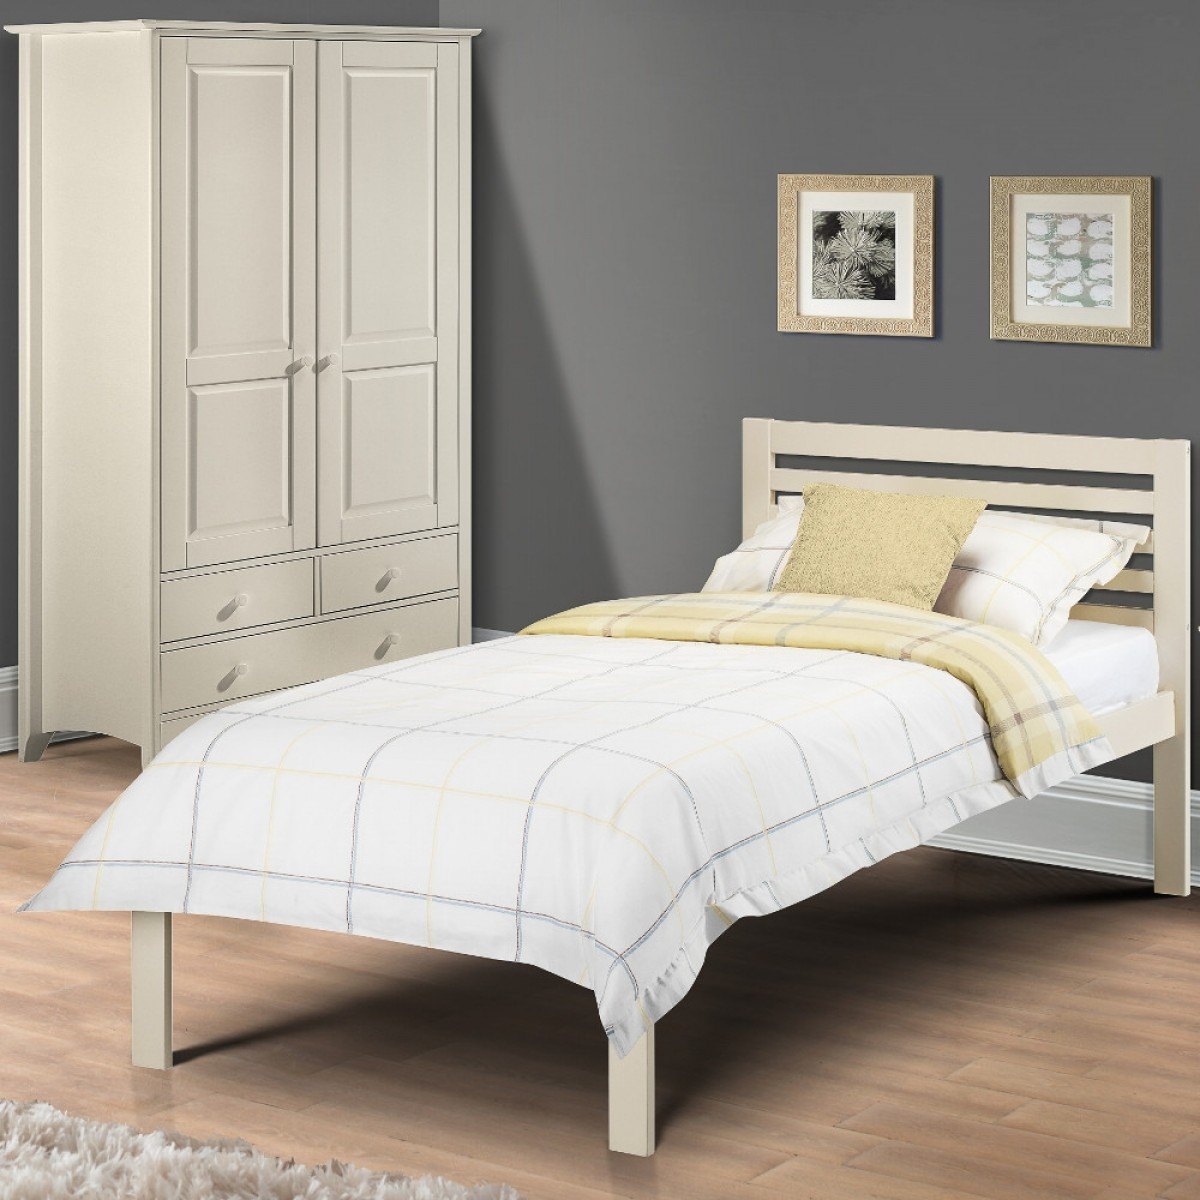 Slocum Stone White Finish Solid Pine Wooden Bed